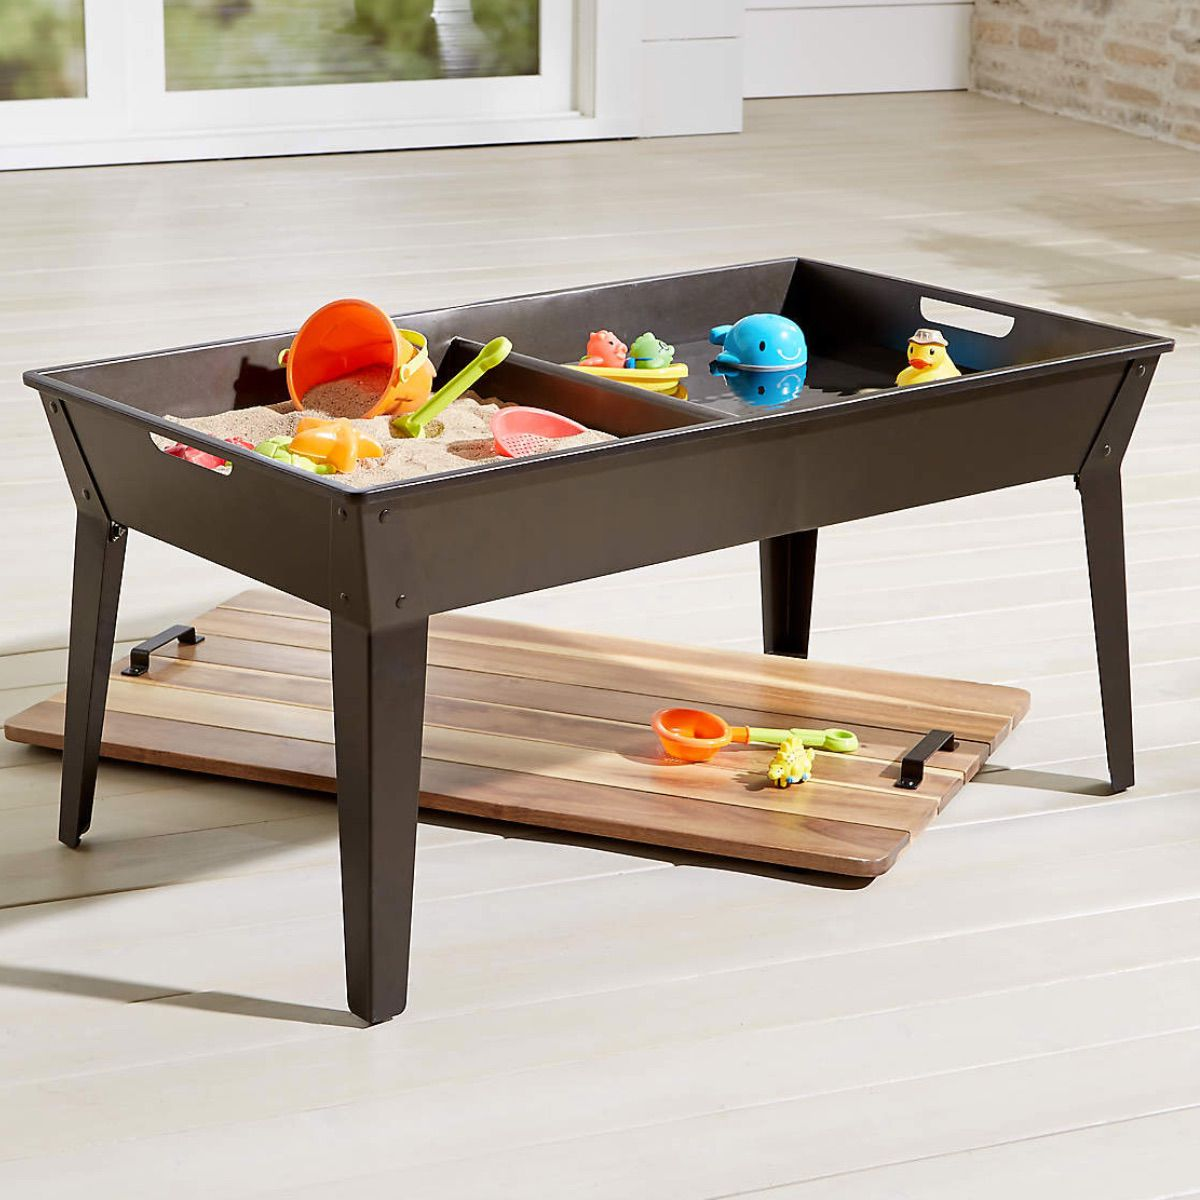 Crate & Kids Sand and Water Table